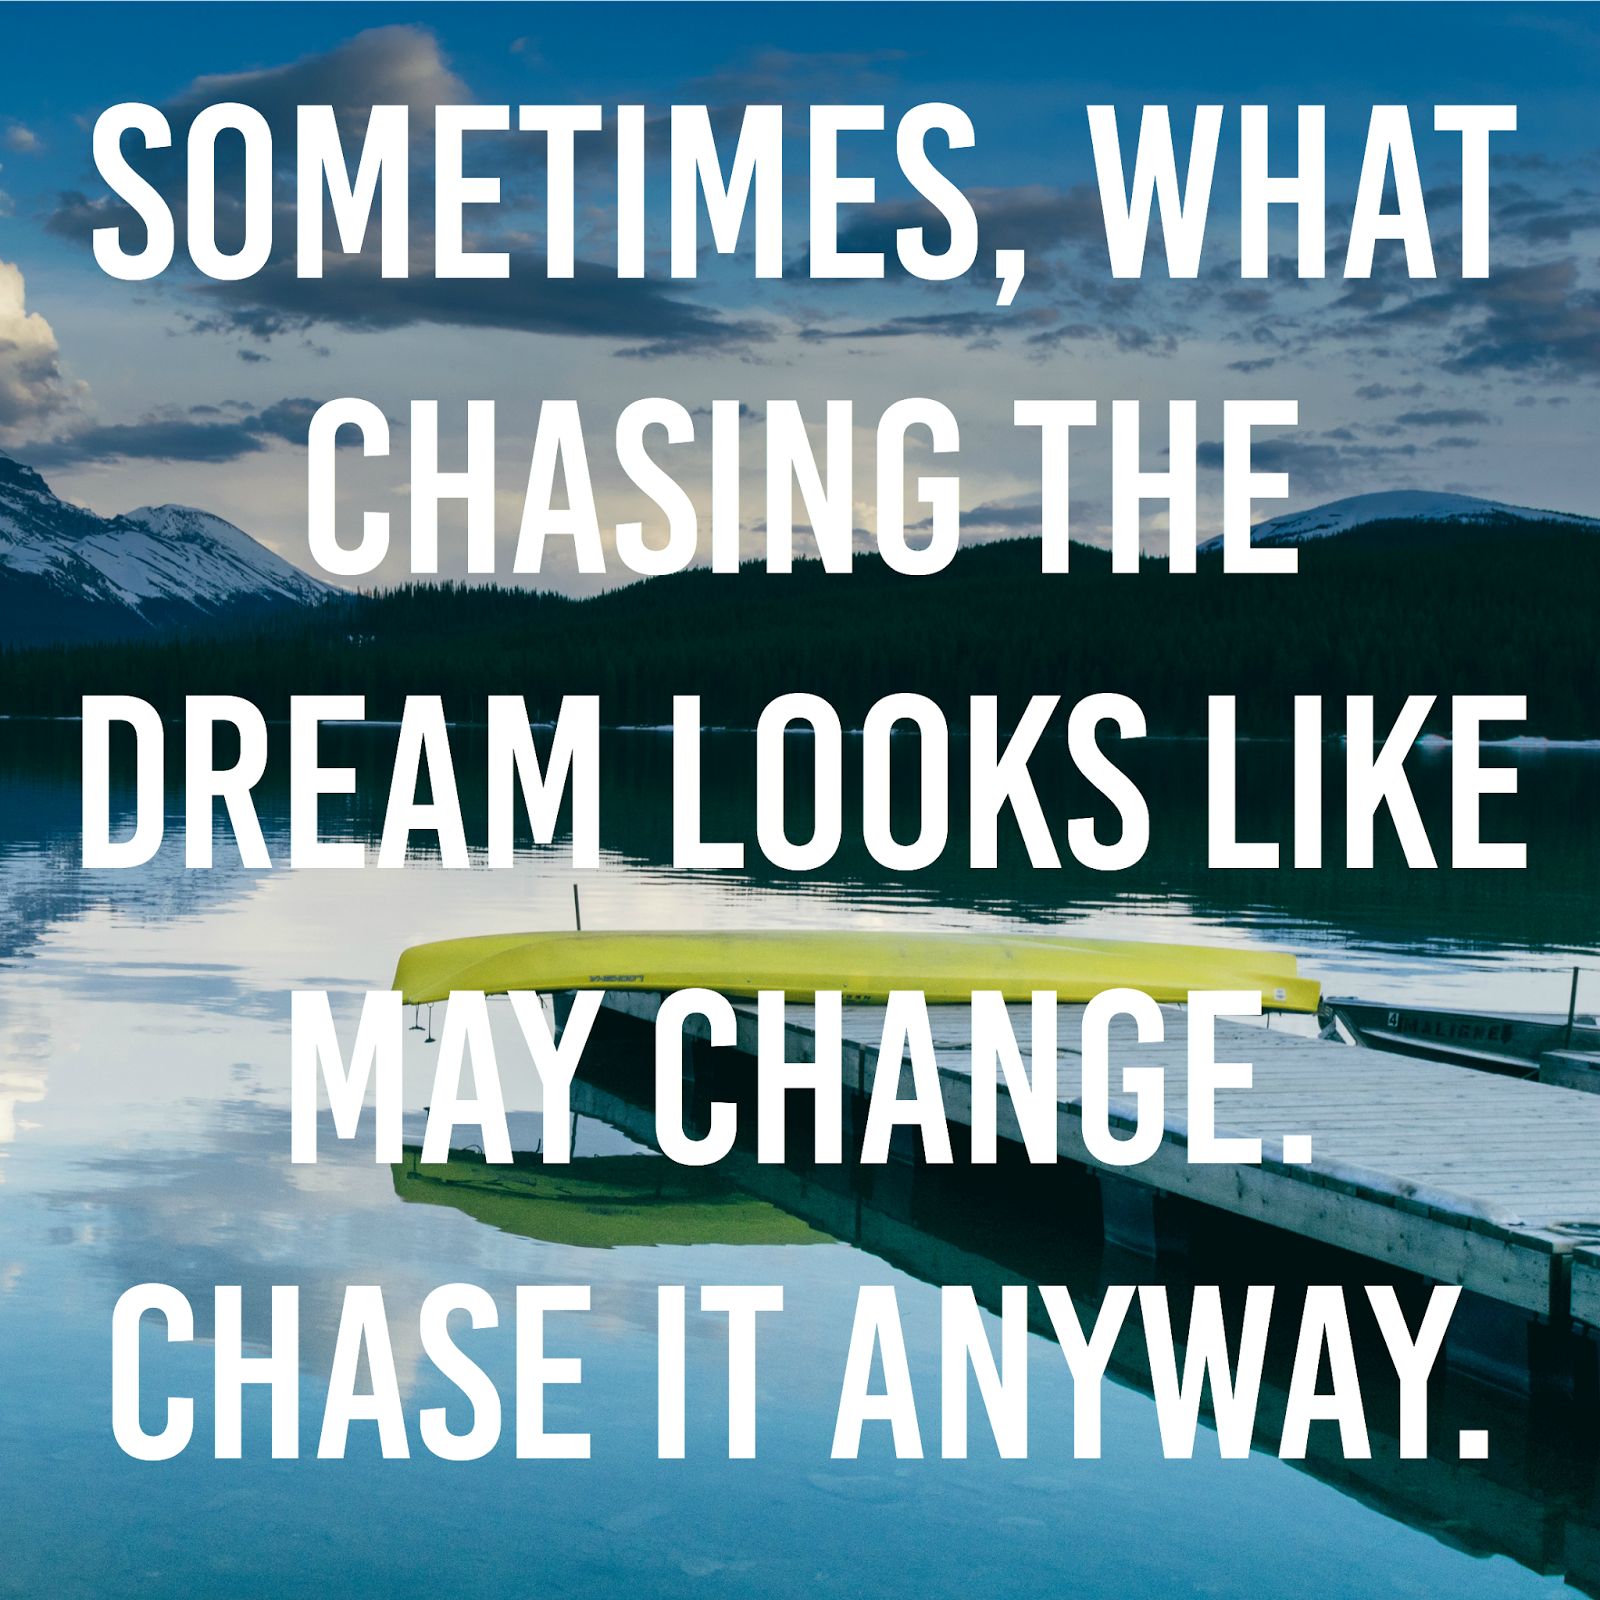 Sometimes, what chasing the dream looks like may change. Chase it anyway.